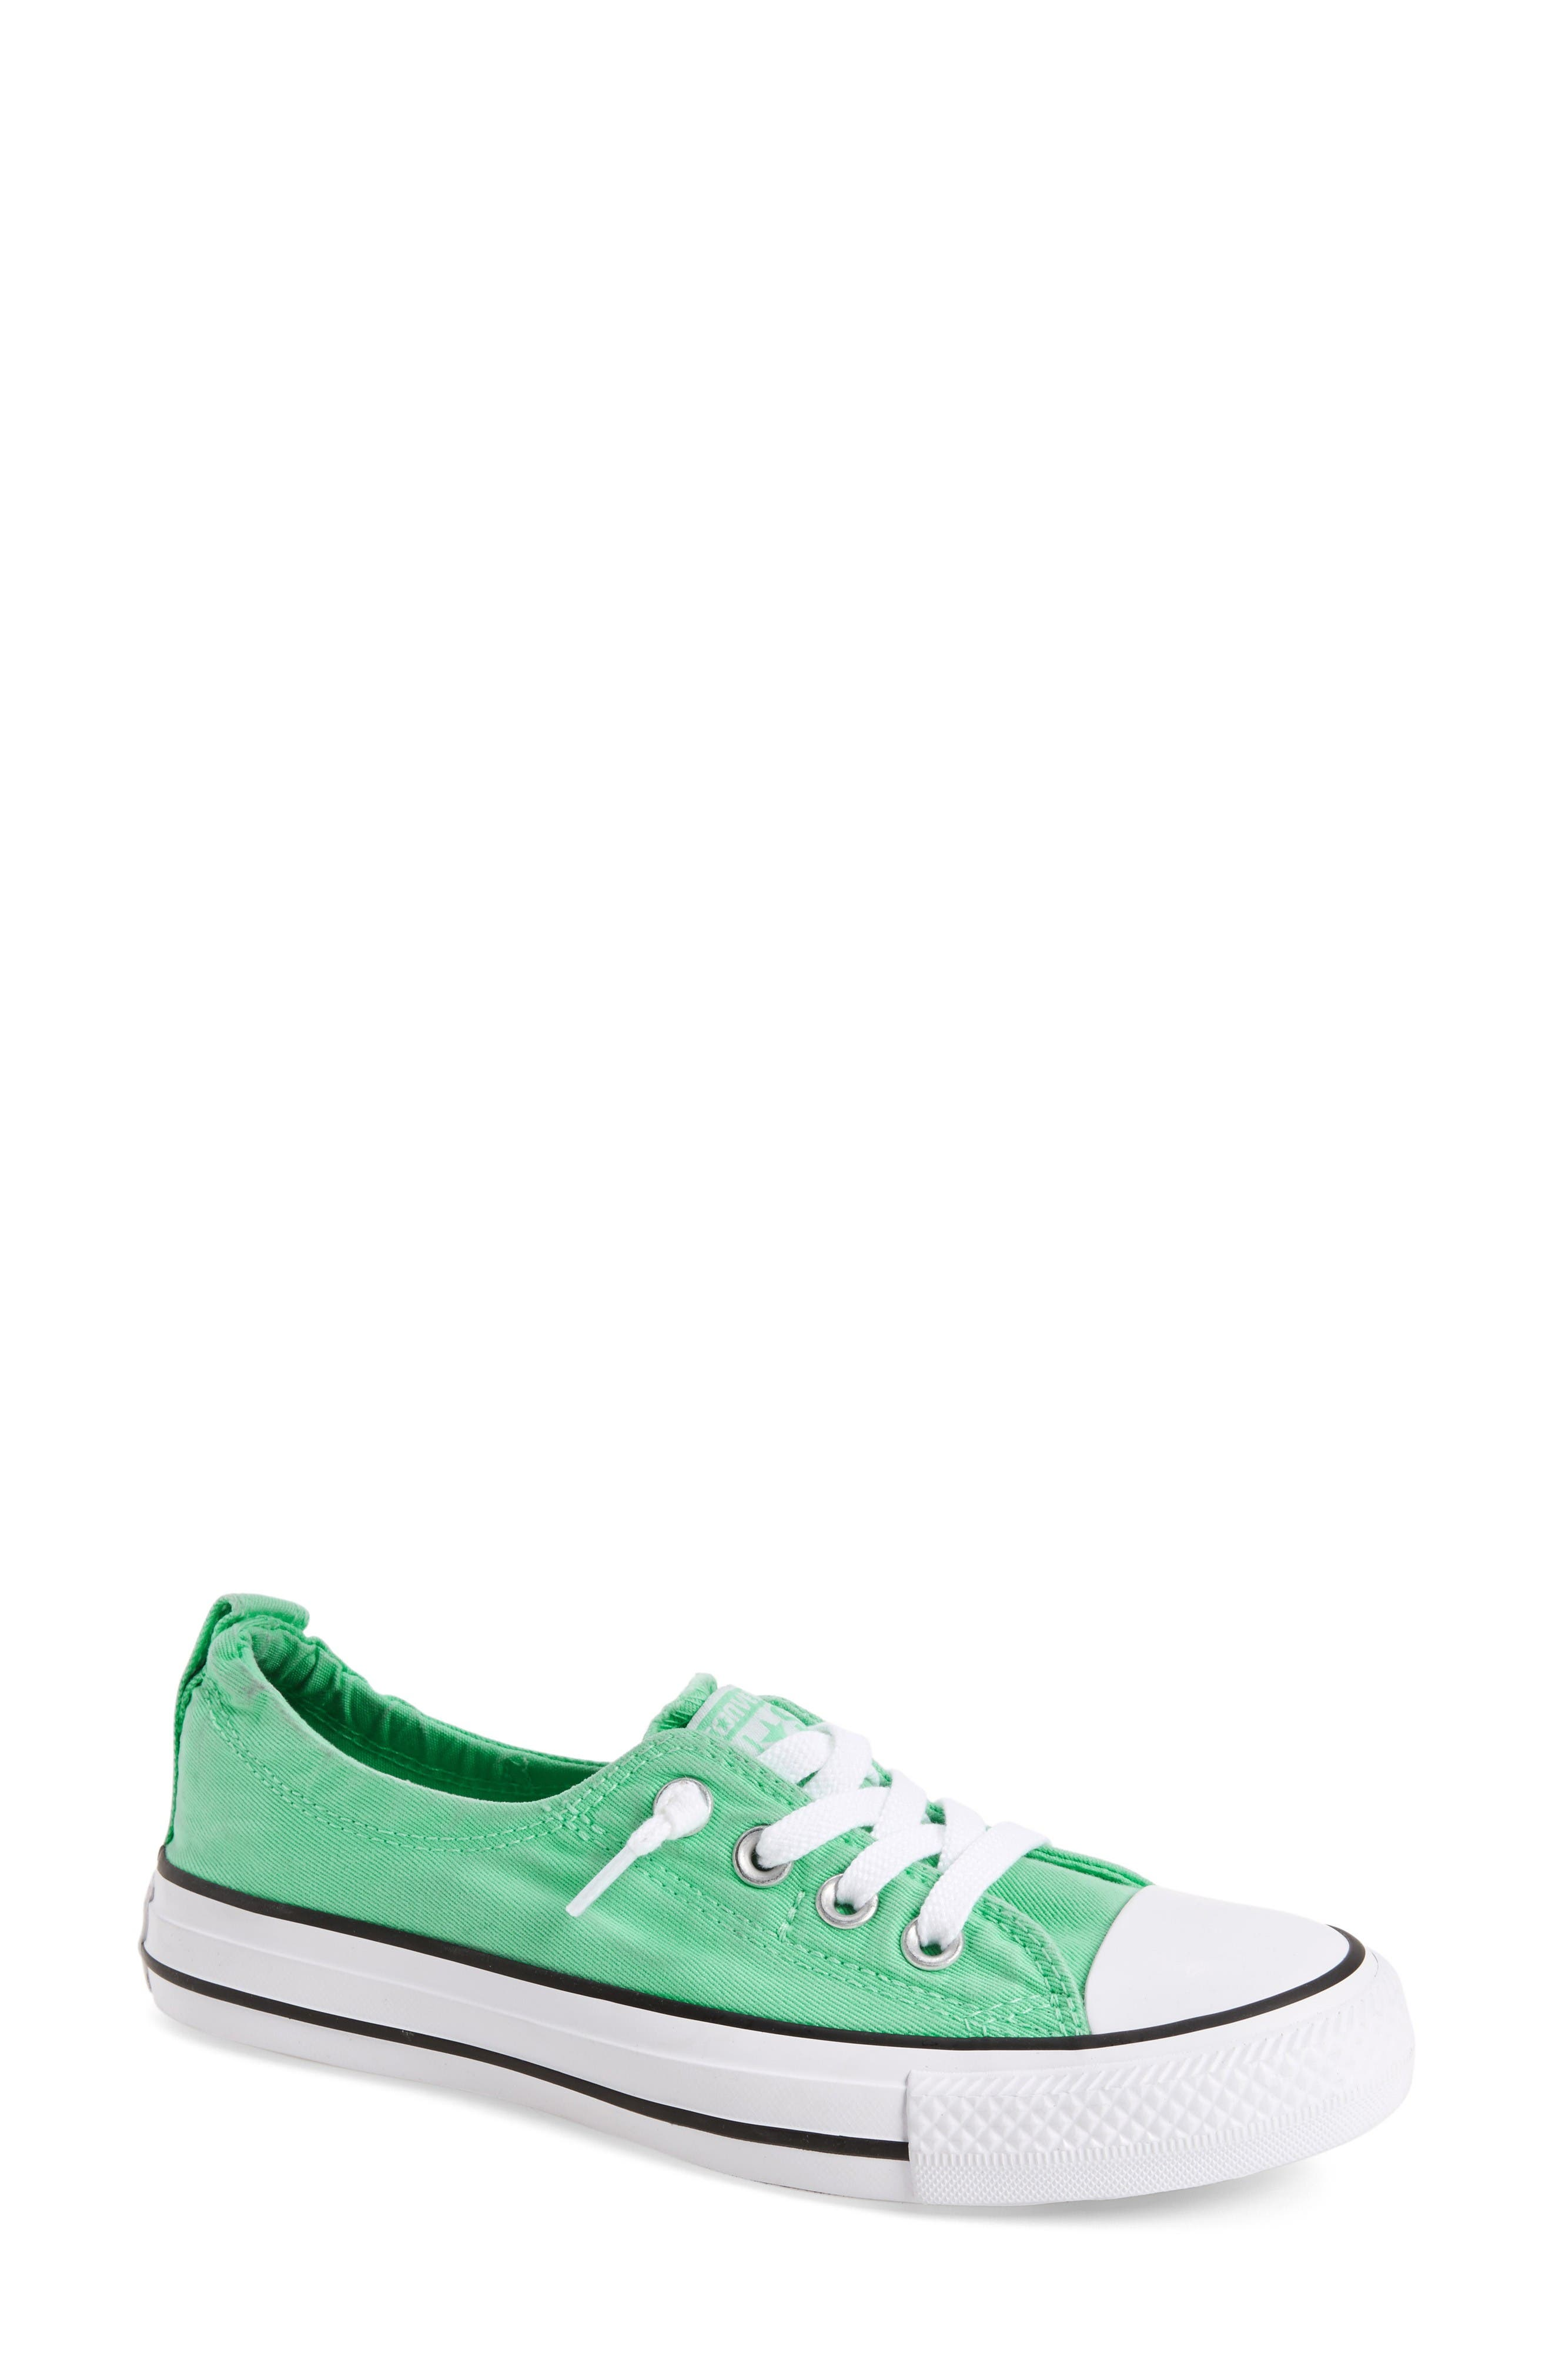 Main Image - Converse Chuck Taylor® All Star® 'Shoreline' Low Top Sneaker (Women) (Regular Retail Price: $59.95)